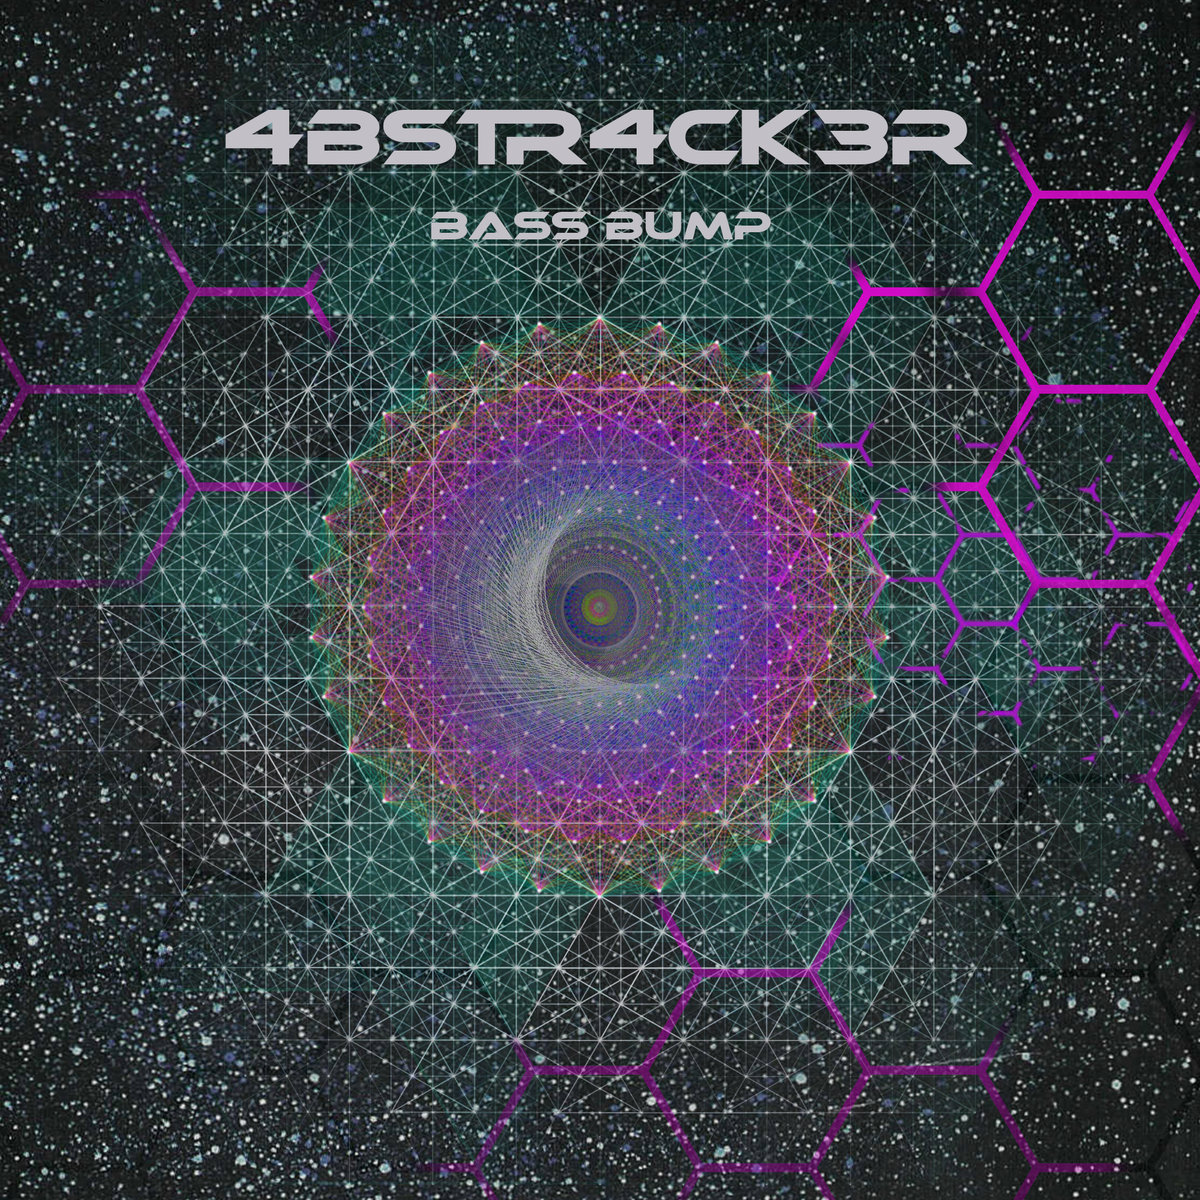 4bstr4ck3r - Eastern Fantasy @ 'Bass Bump' album (bass, electronic)